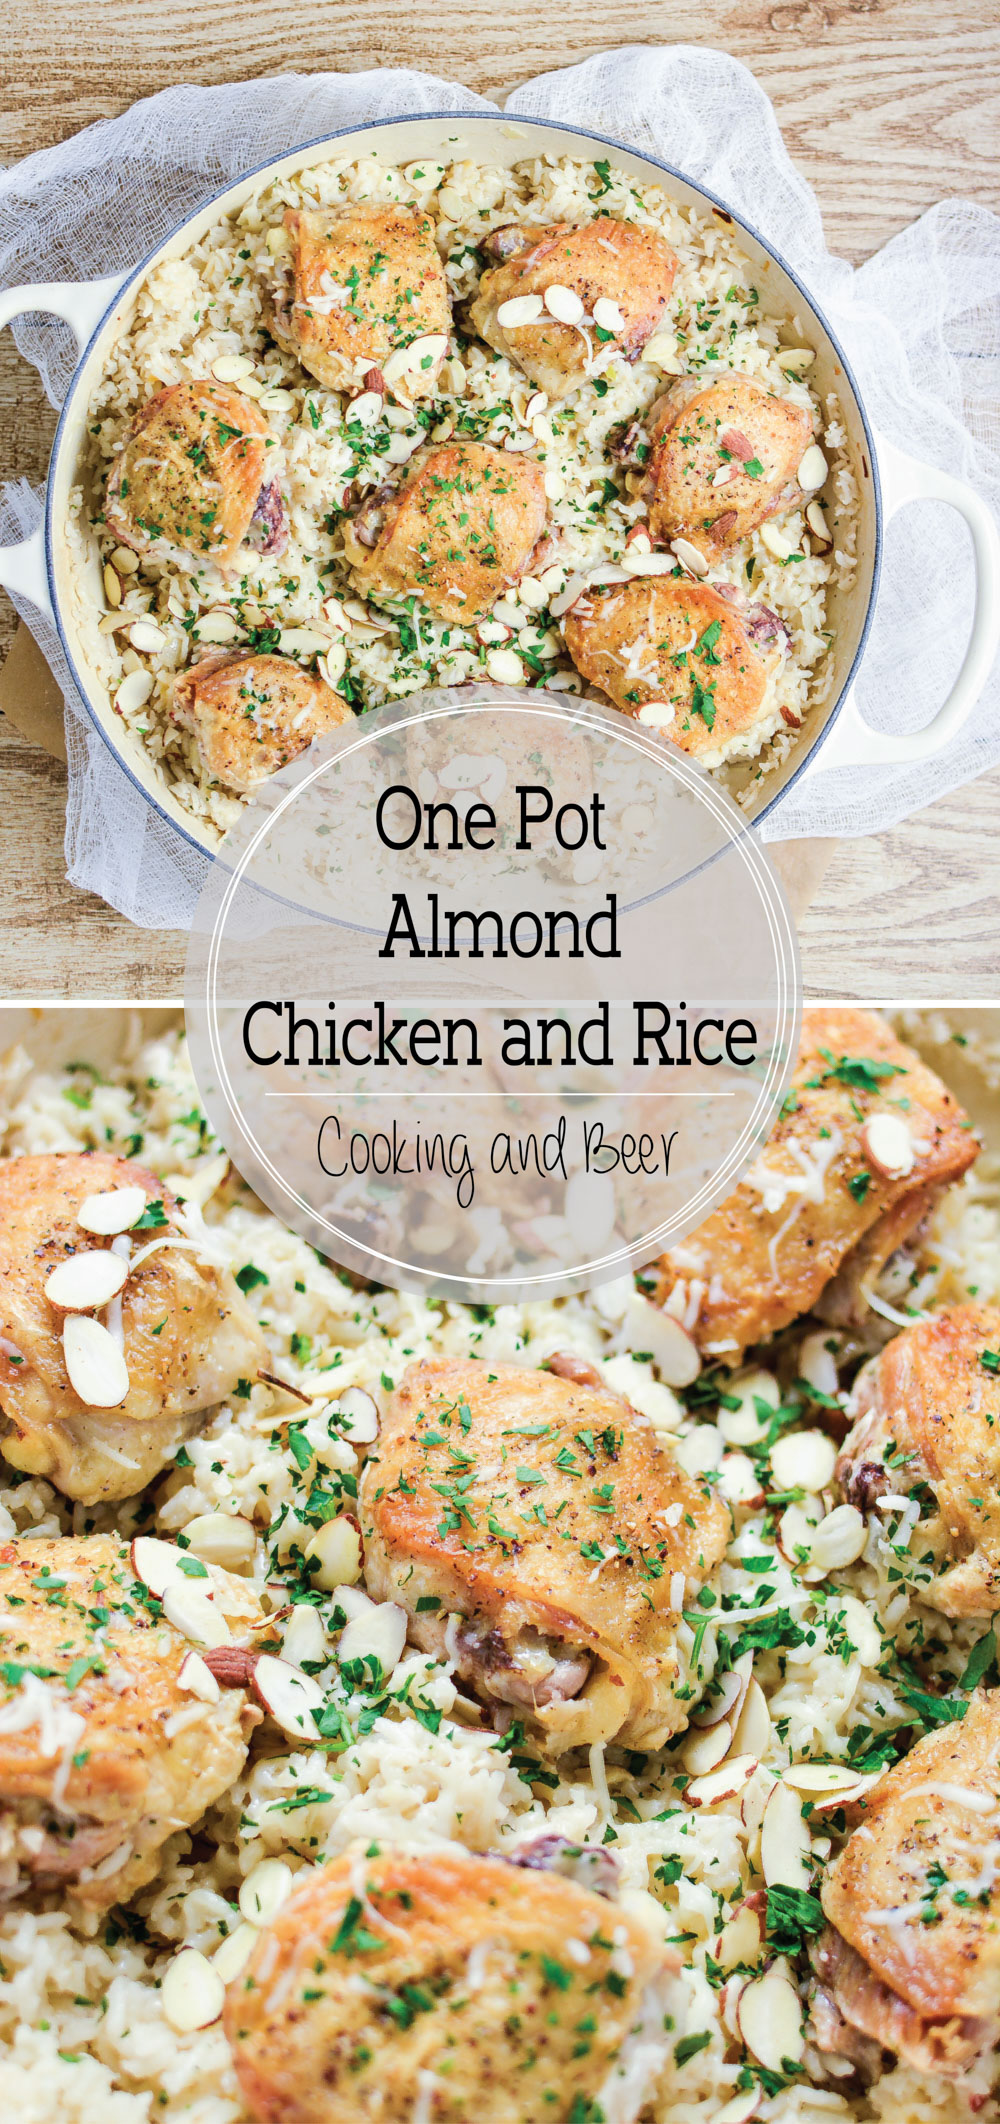 One Pot Almond Chicken and Rice is cheesy, flavorful, and loaded with almond! It's quick and simple, thus making it the perfect weeknight meal!